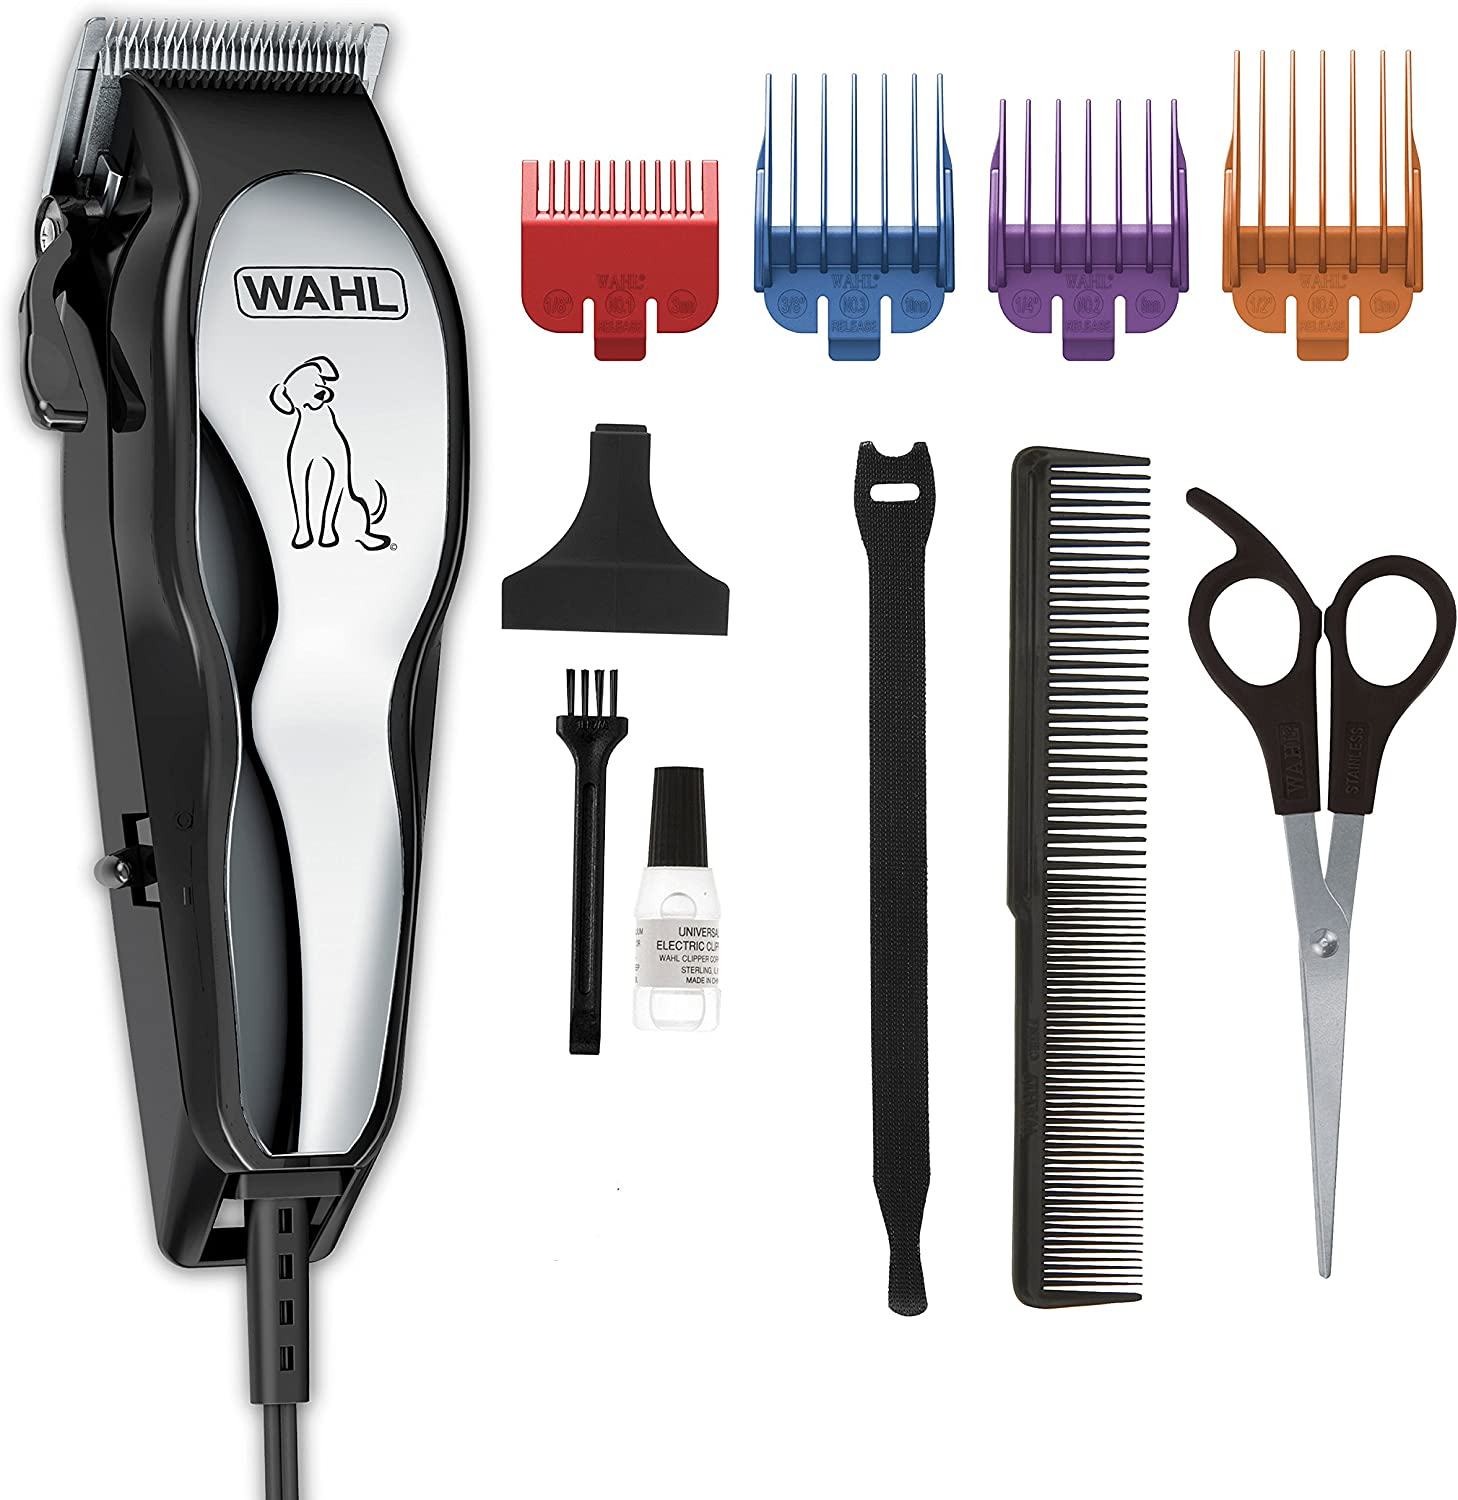 Wahl Clipper Pet-Pro Dog Grooming Kit